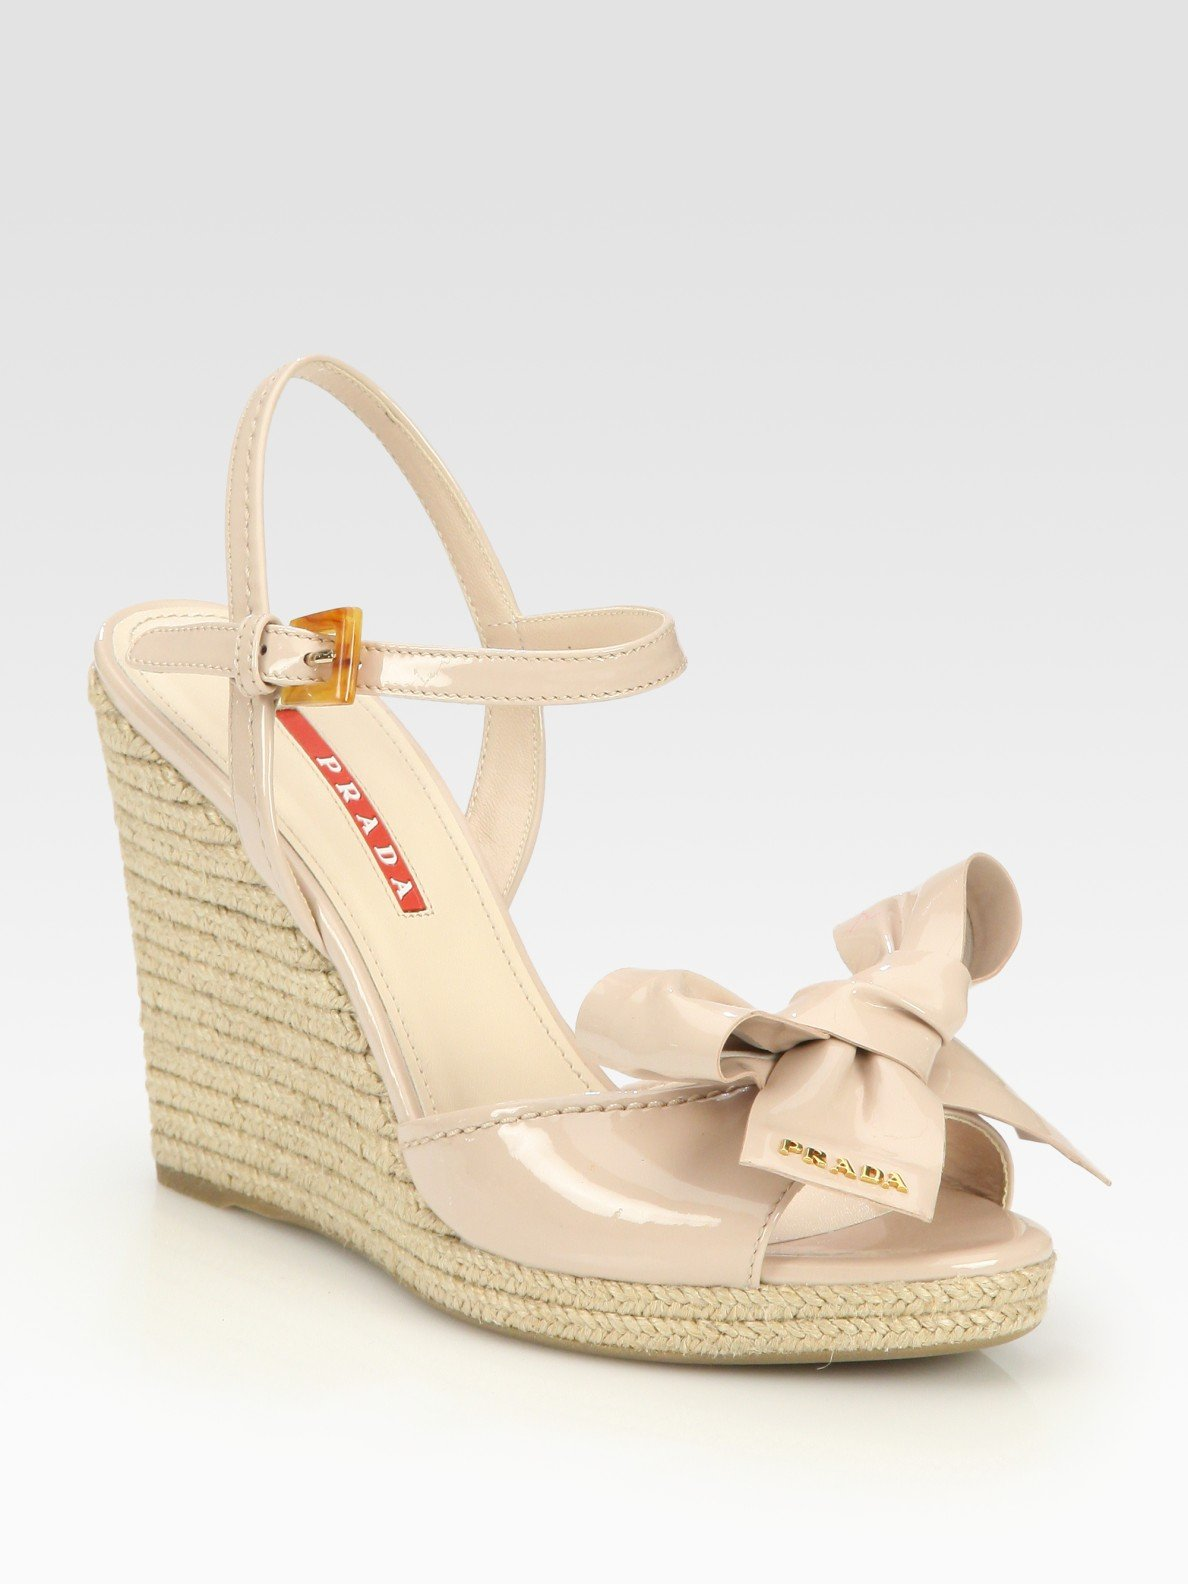 f60716de09ad54 Lyst - Prada Patent Leather Espadrille Wedge Sandals in Natural